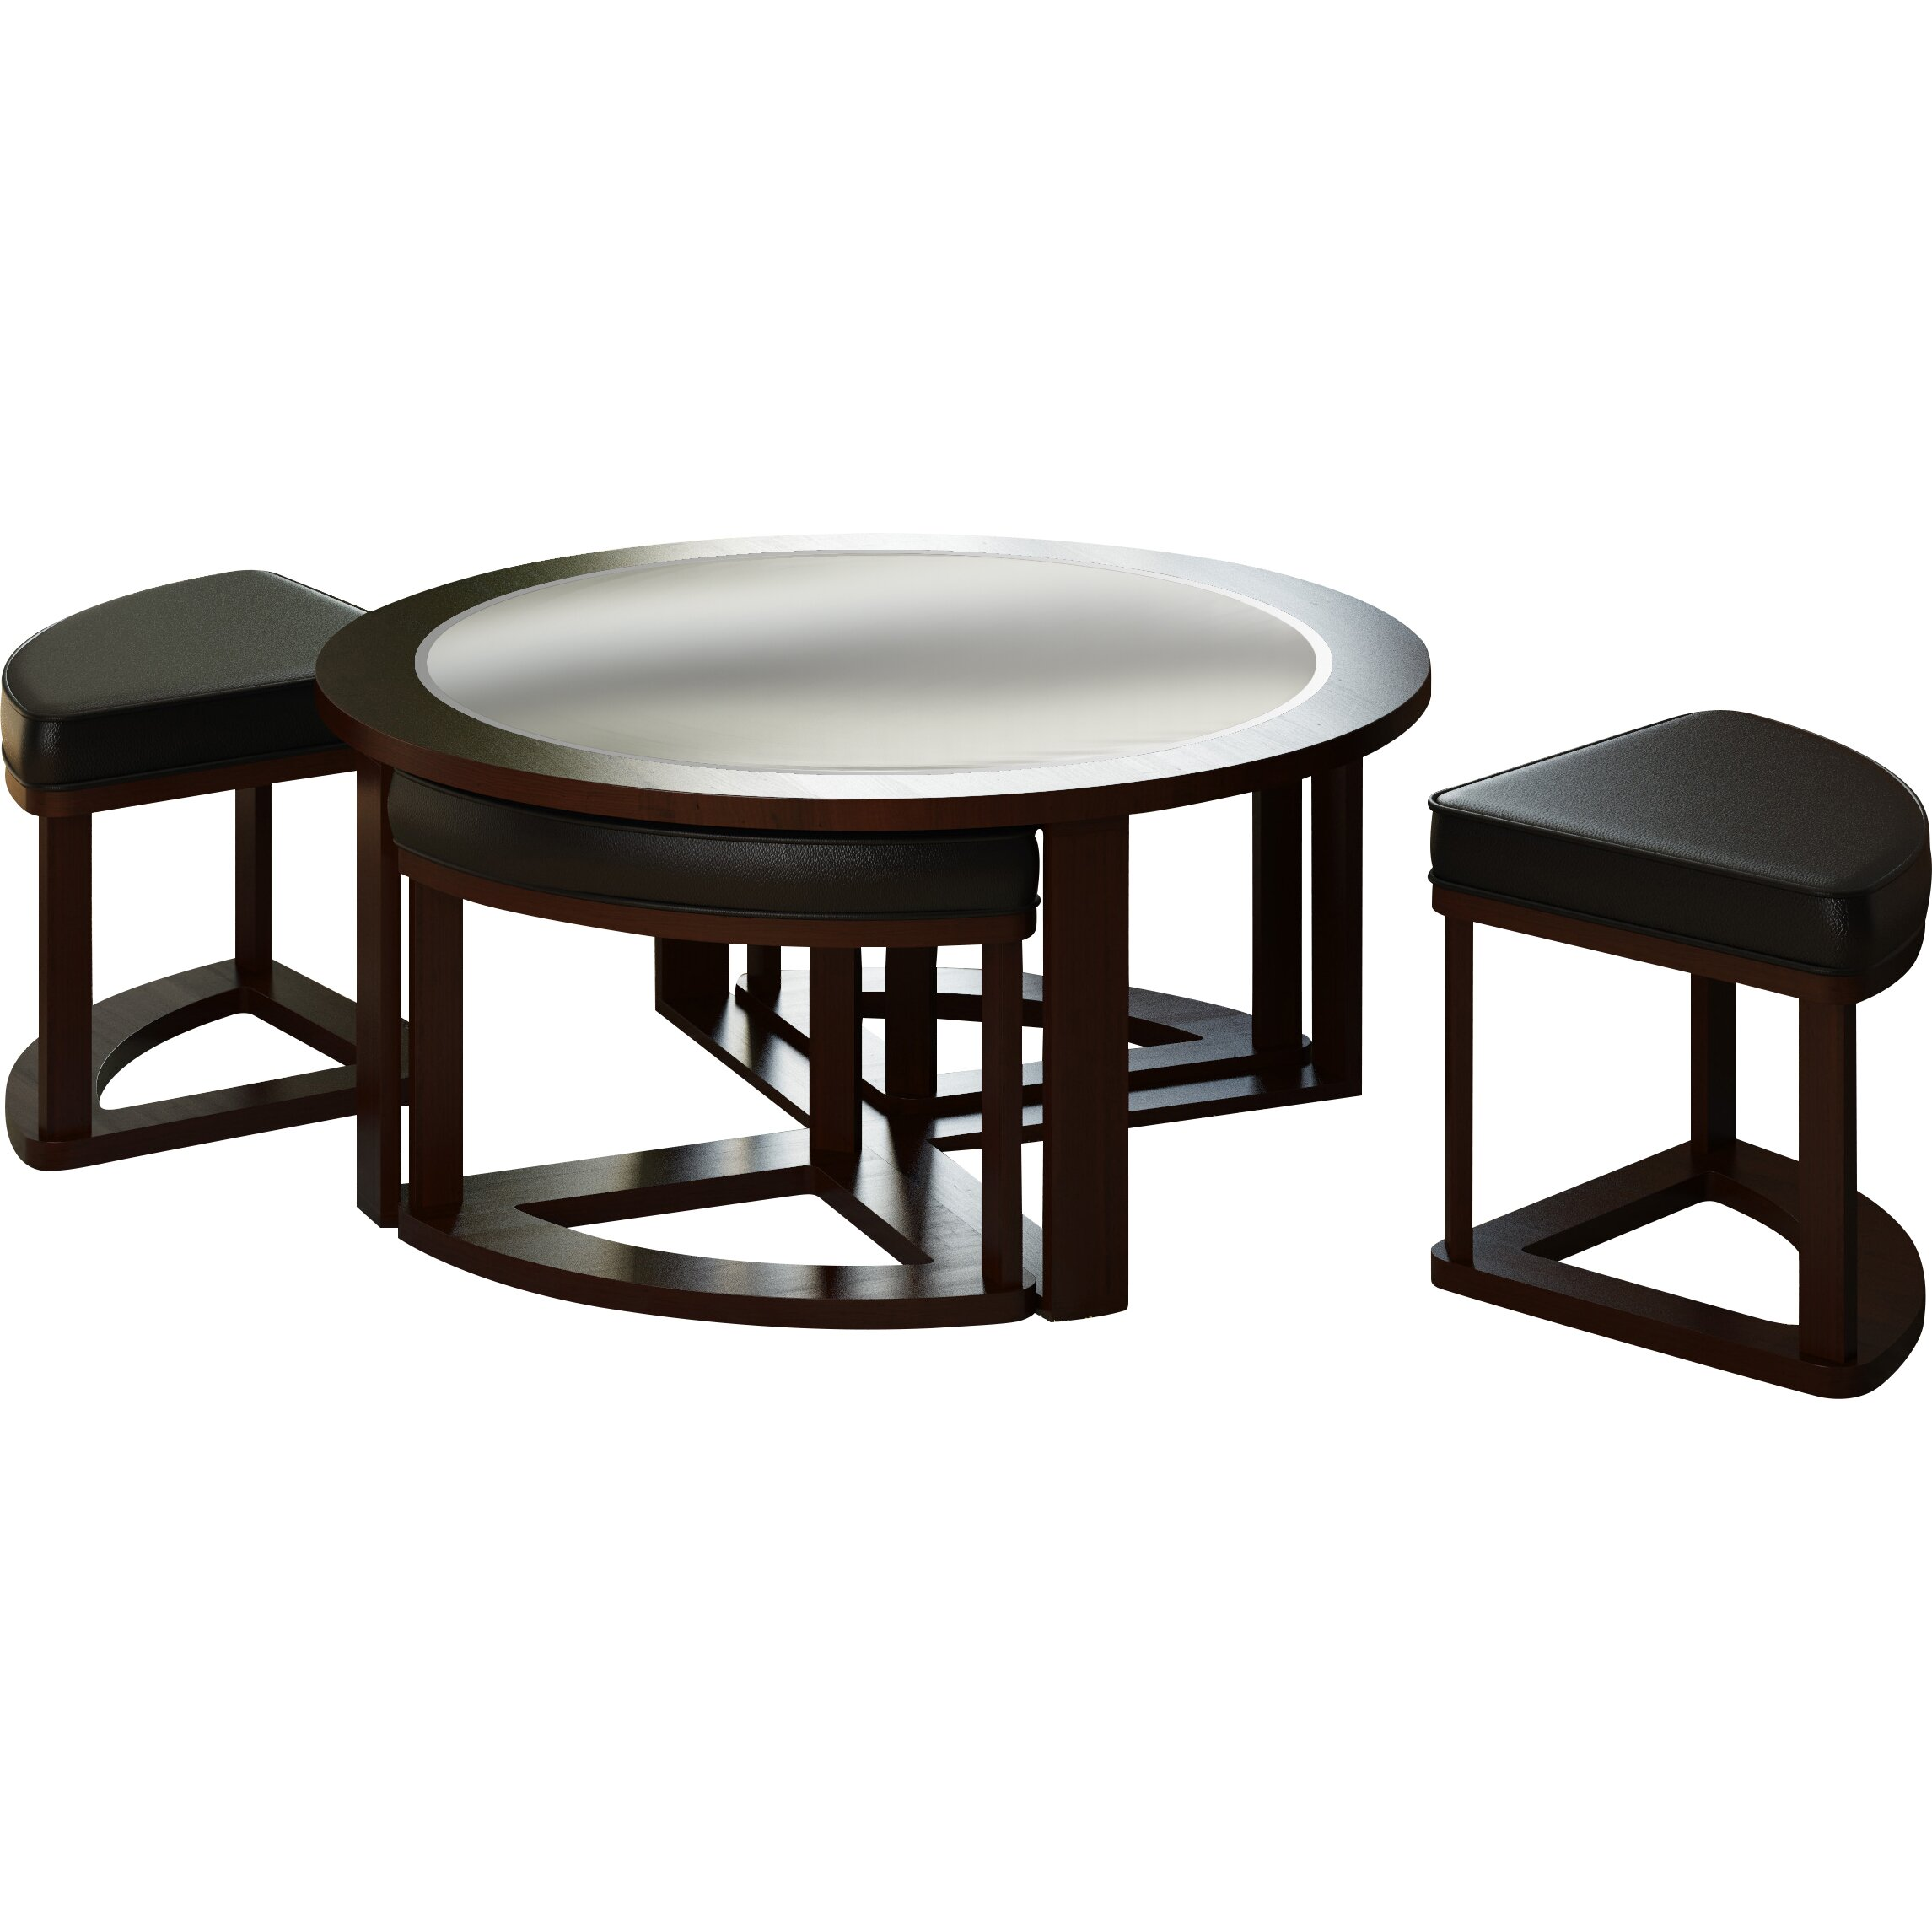 Dcor Design Belgrove Coffee Table With 4 Stools Reviews